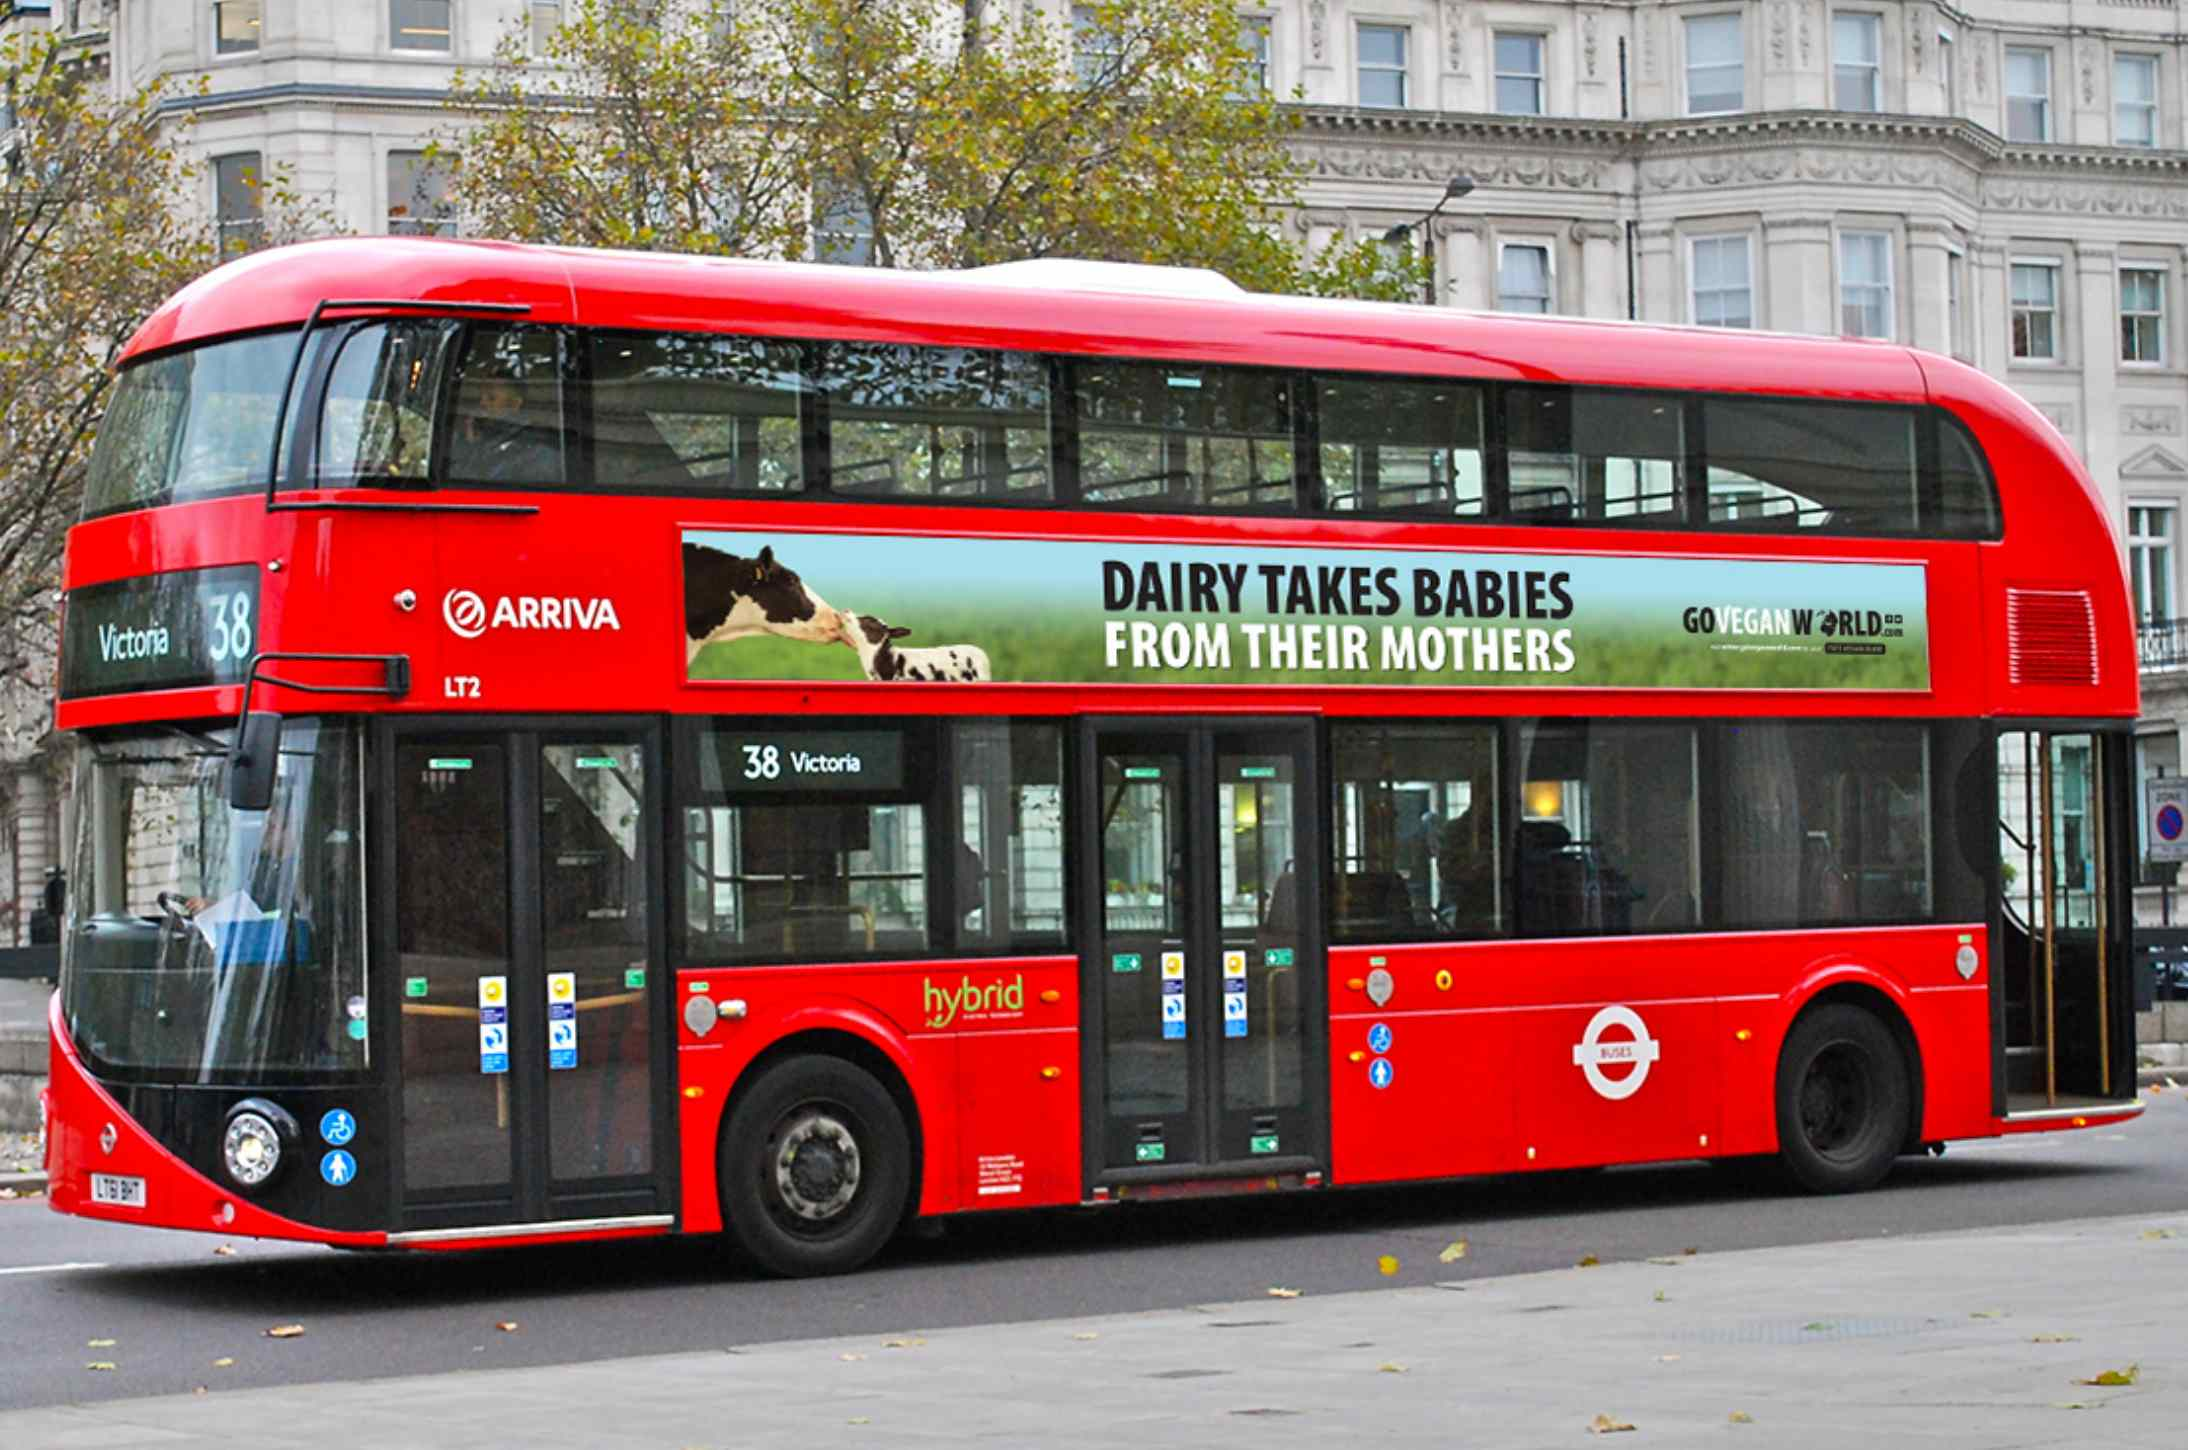 A pro-vegan poster on a London bus